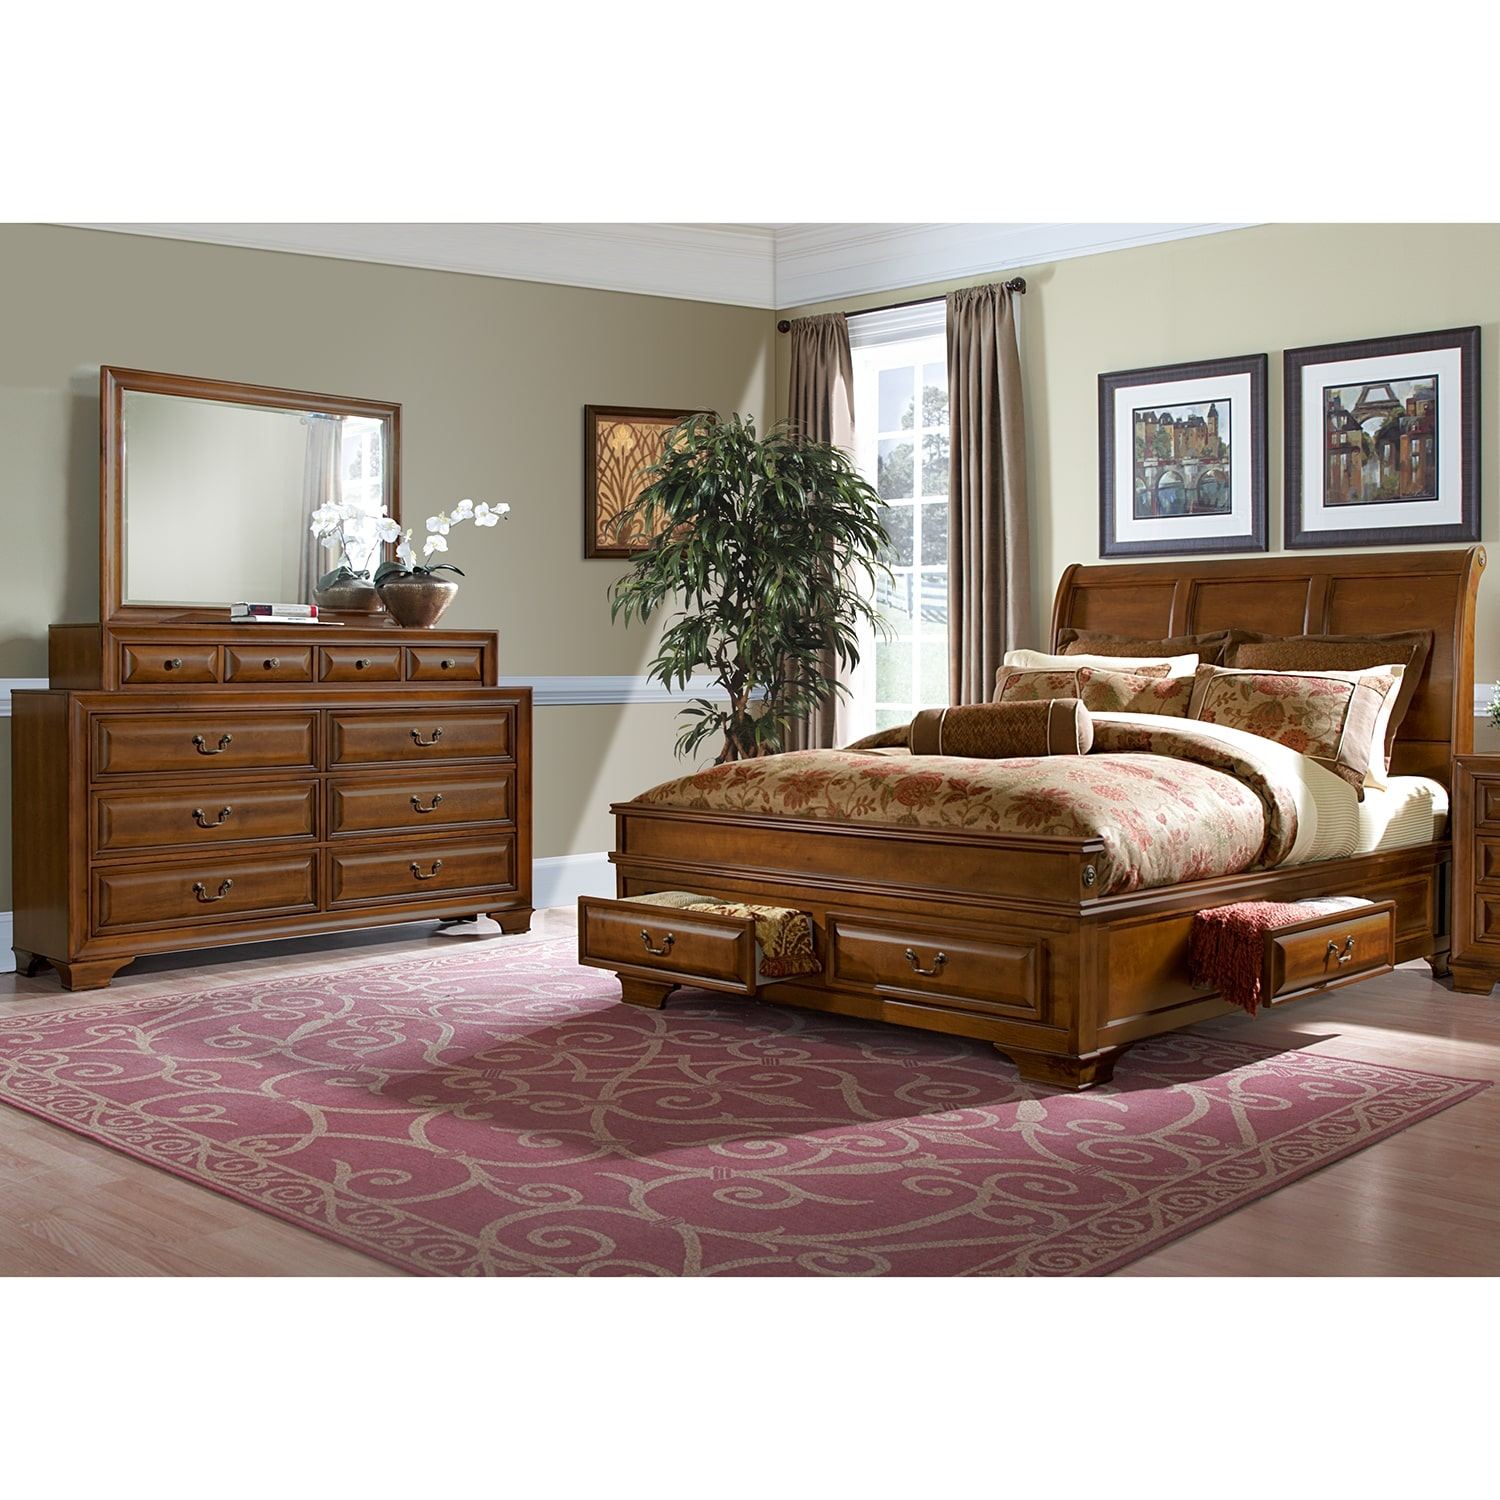 Toronto 5 Piece King Storage Bedroom Set: Sanibelle 5-Piece King Storage Bedroom Set